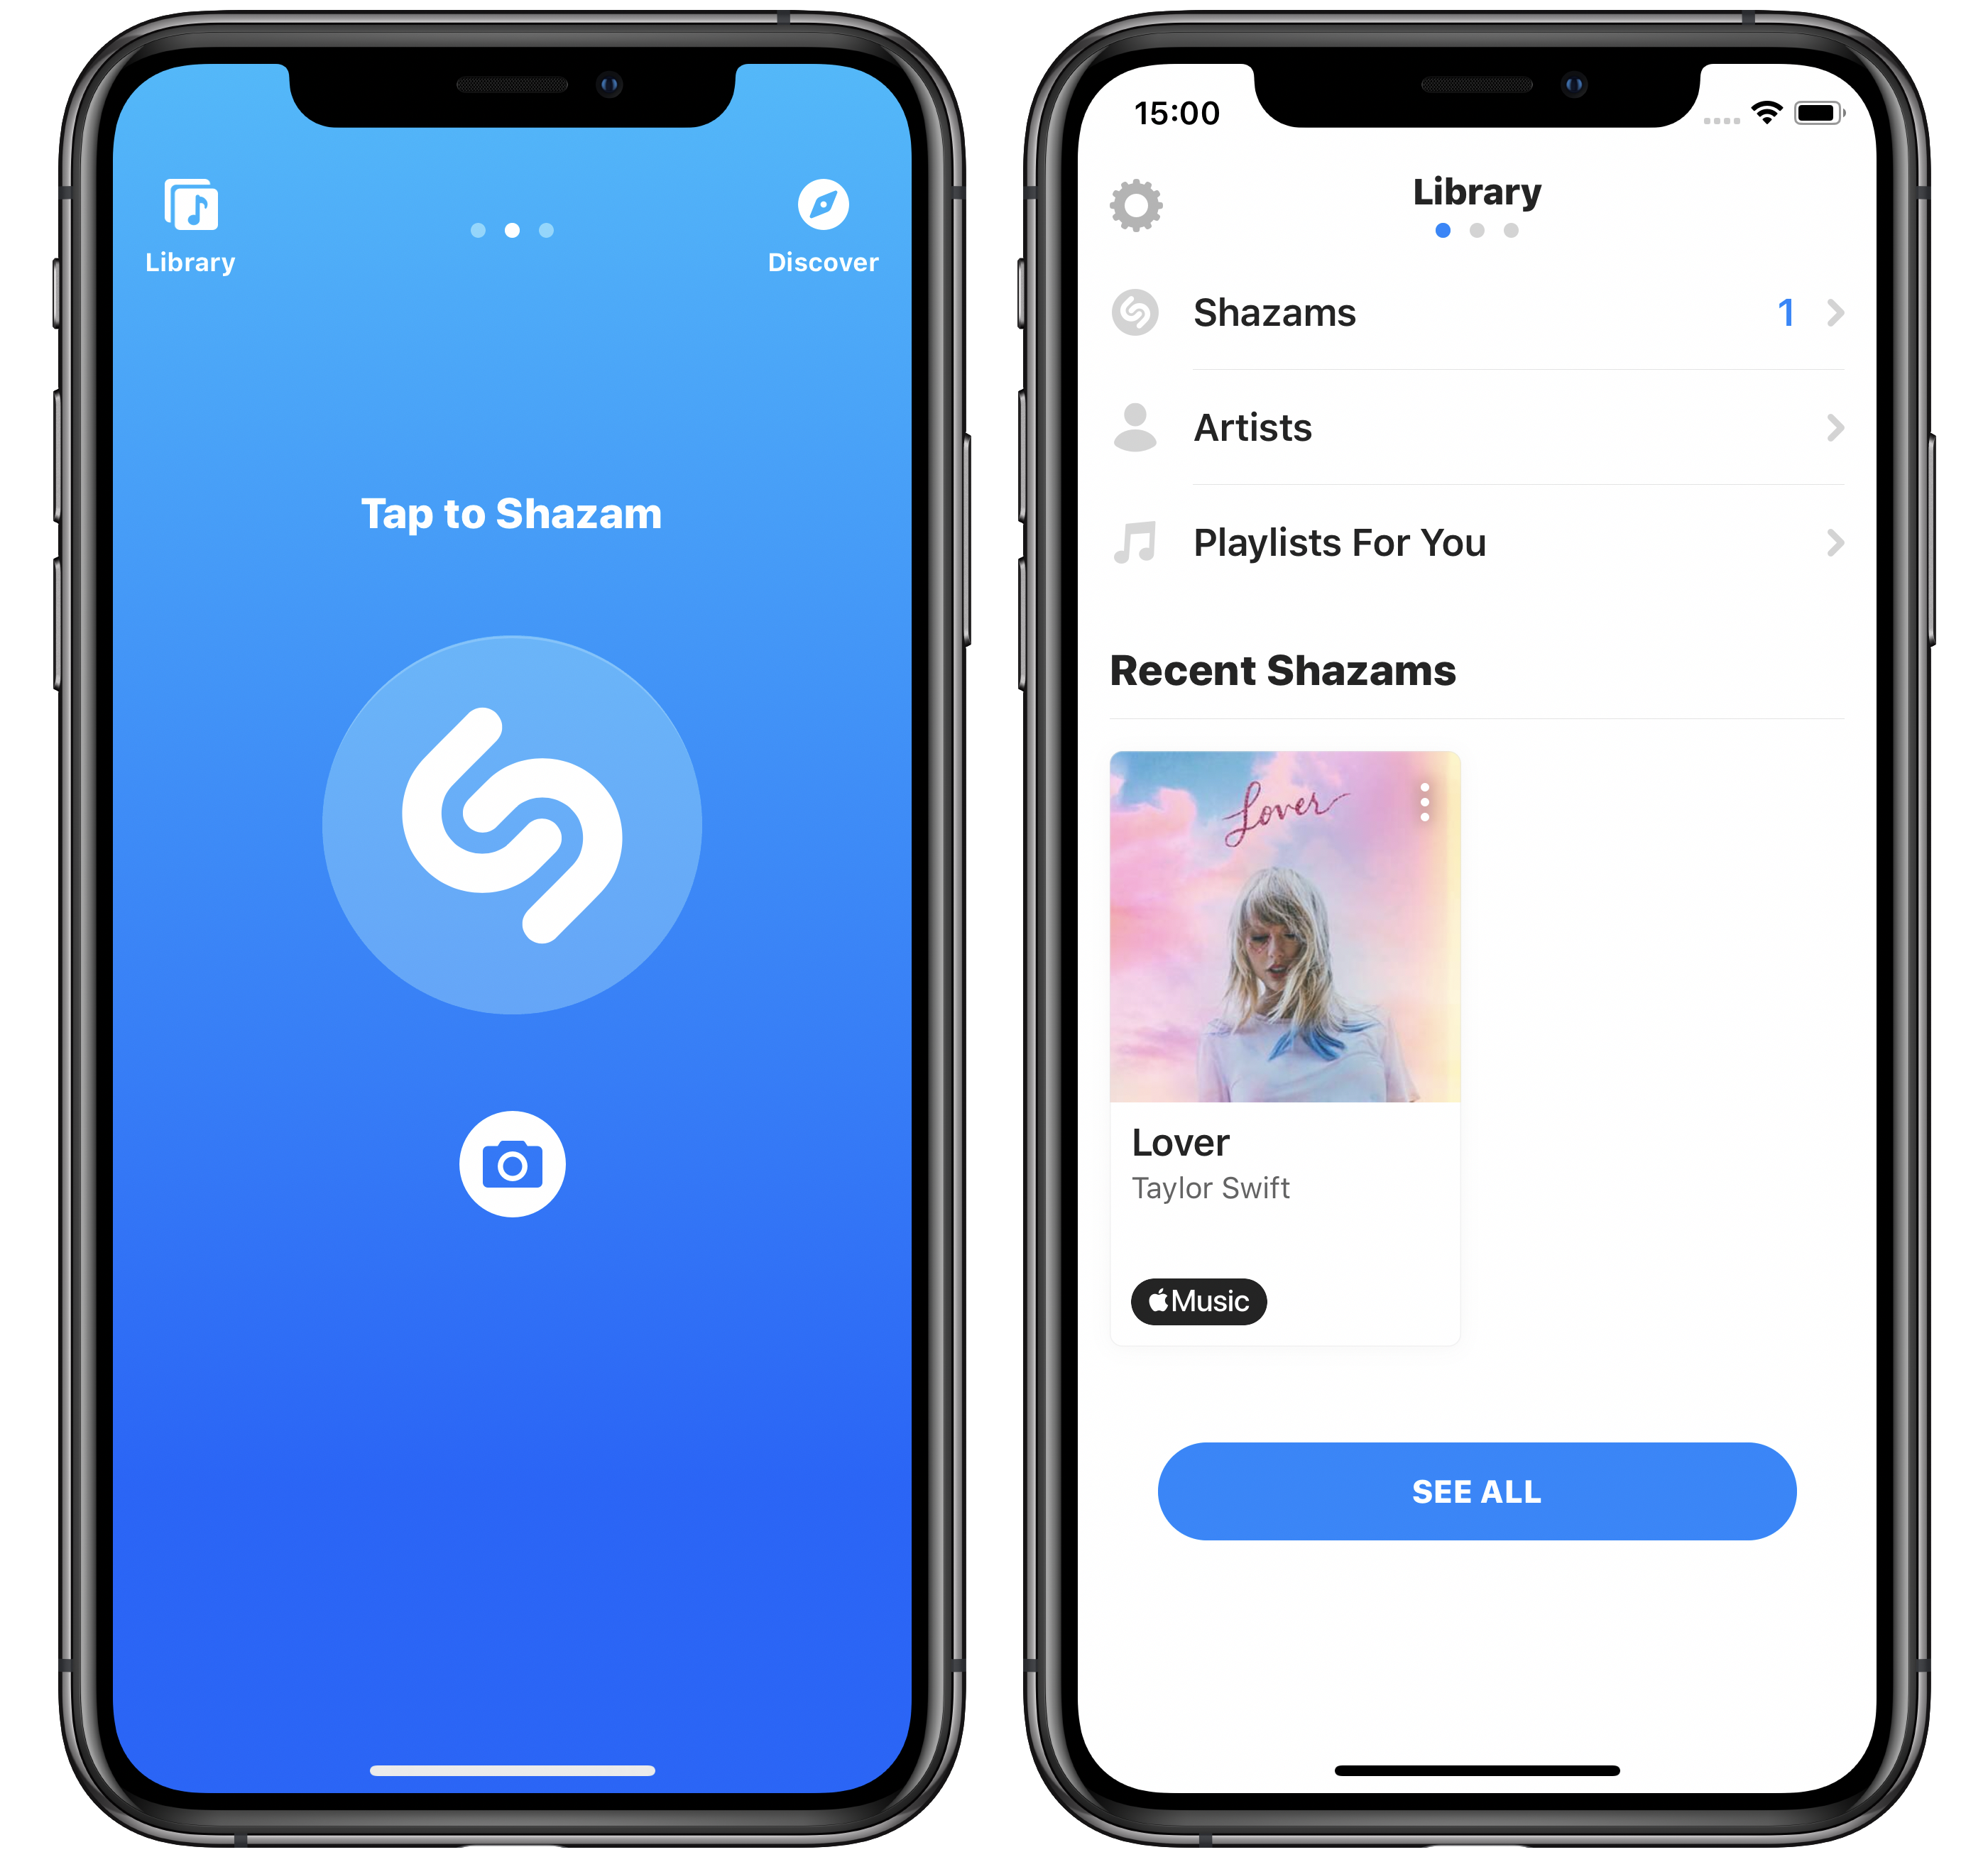 How to get free apple music for a year